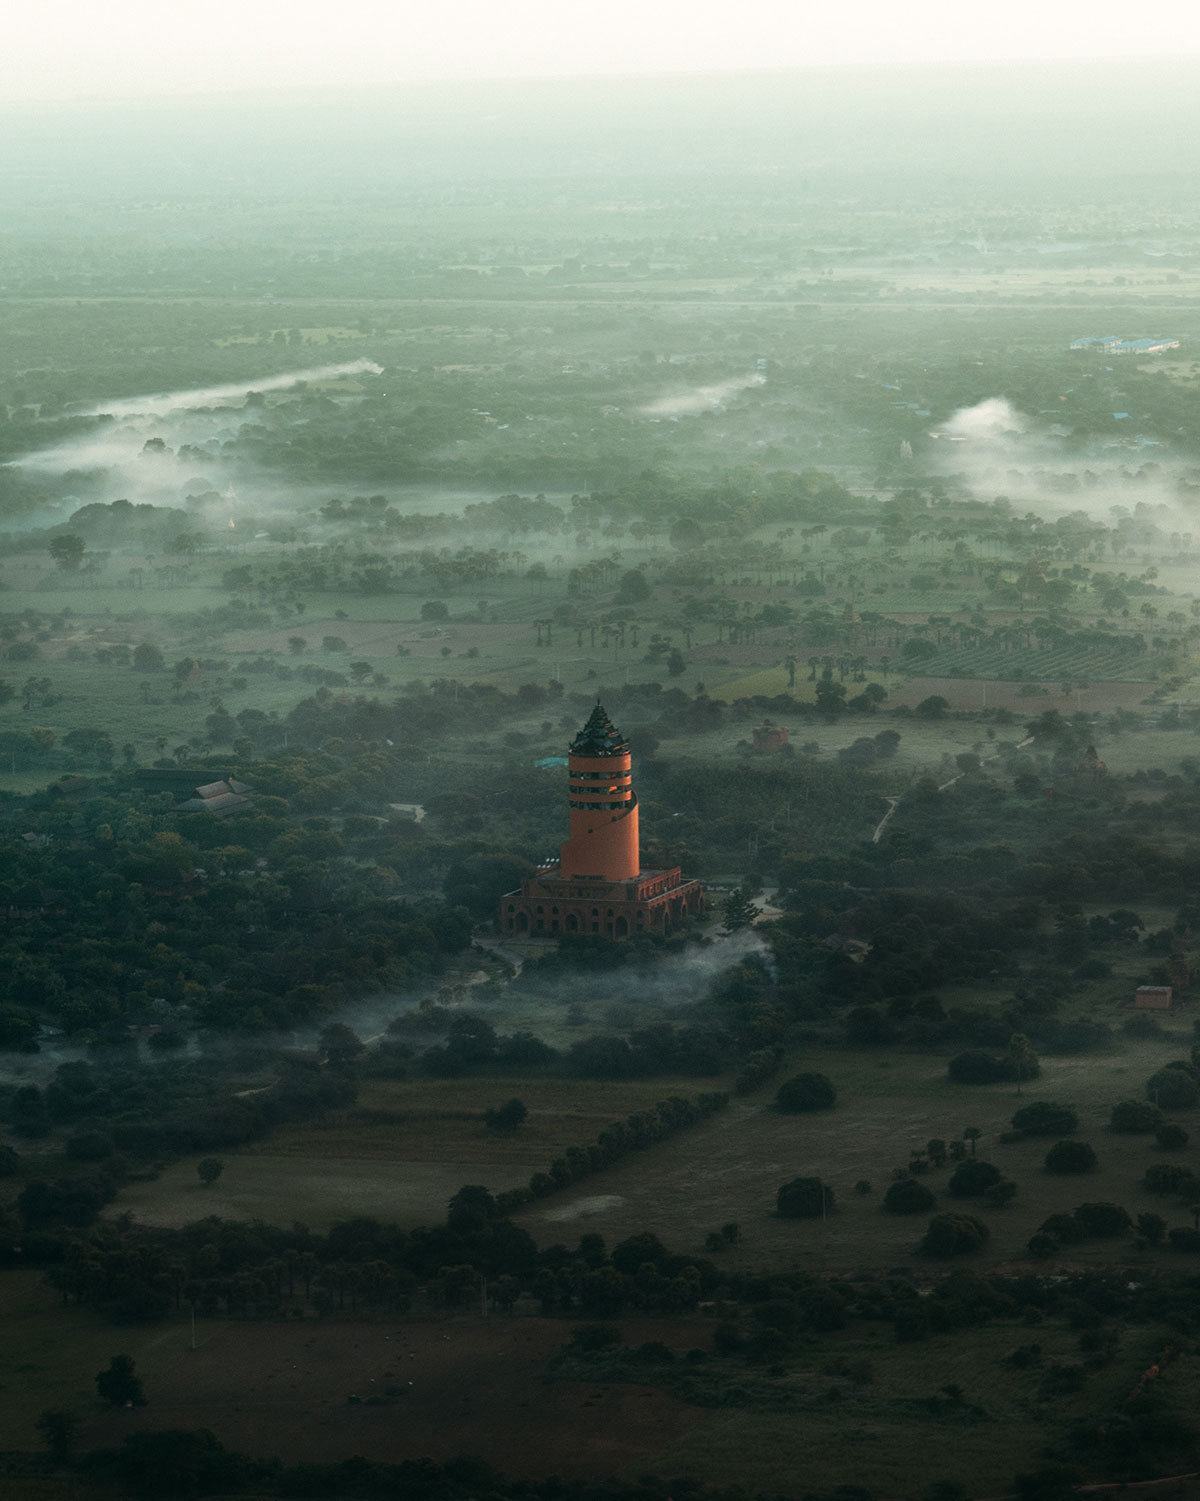 myanmar temples from above by dimitar karanikolov 10 The Amazing Temples of Myanmar from Above (10 Photos)